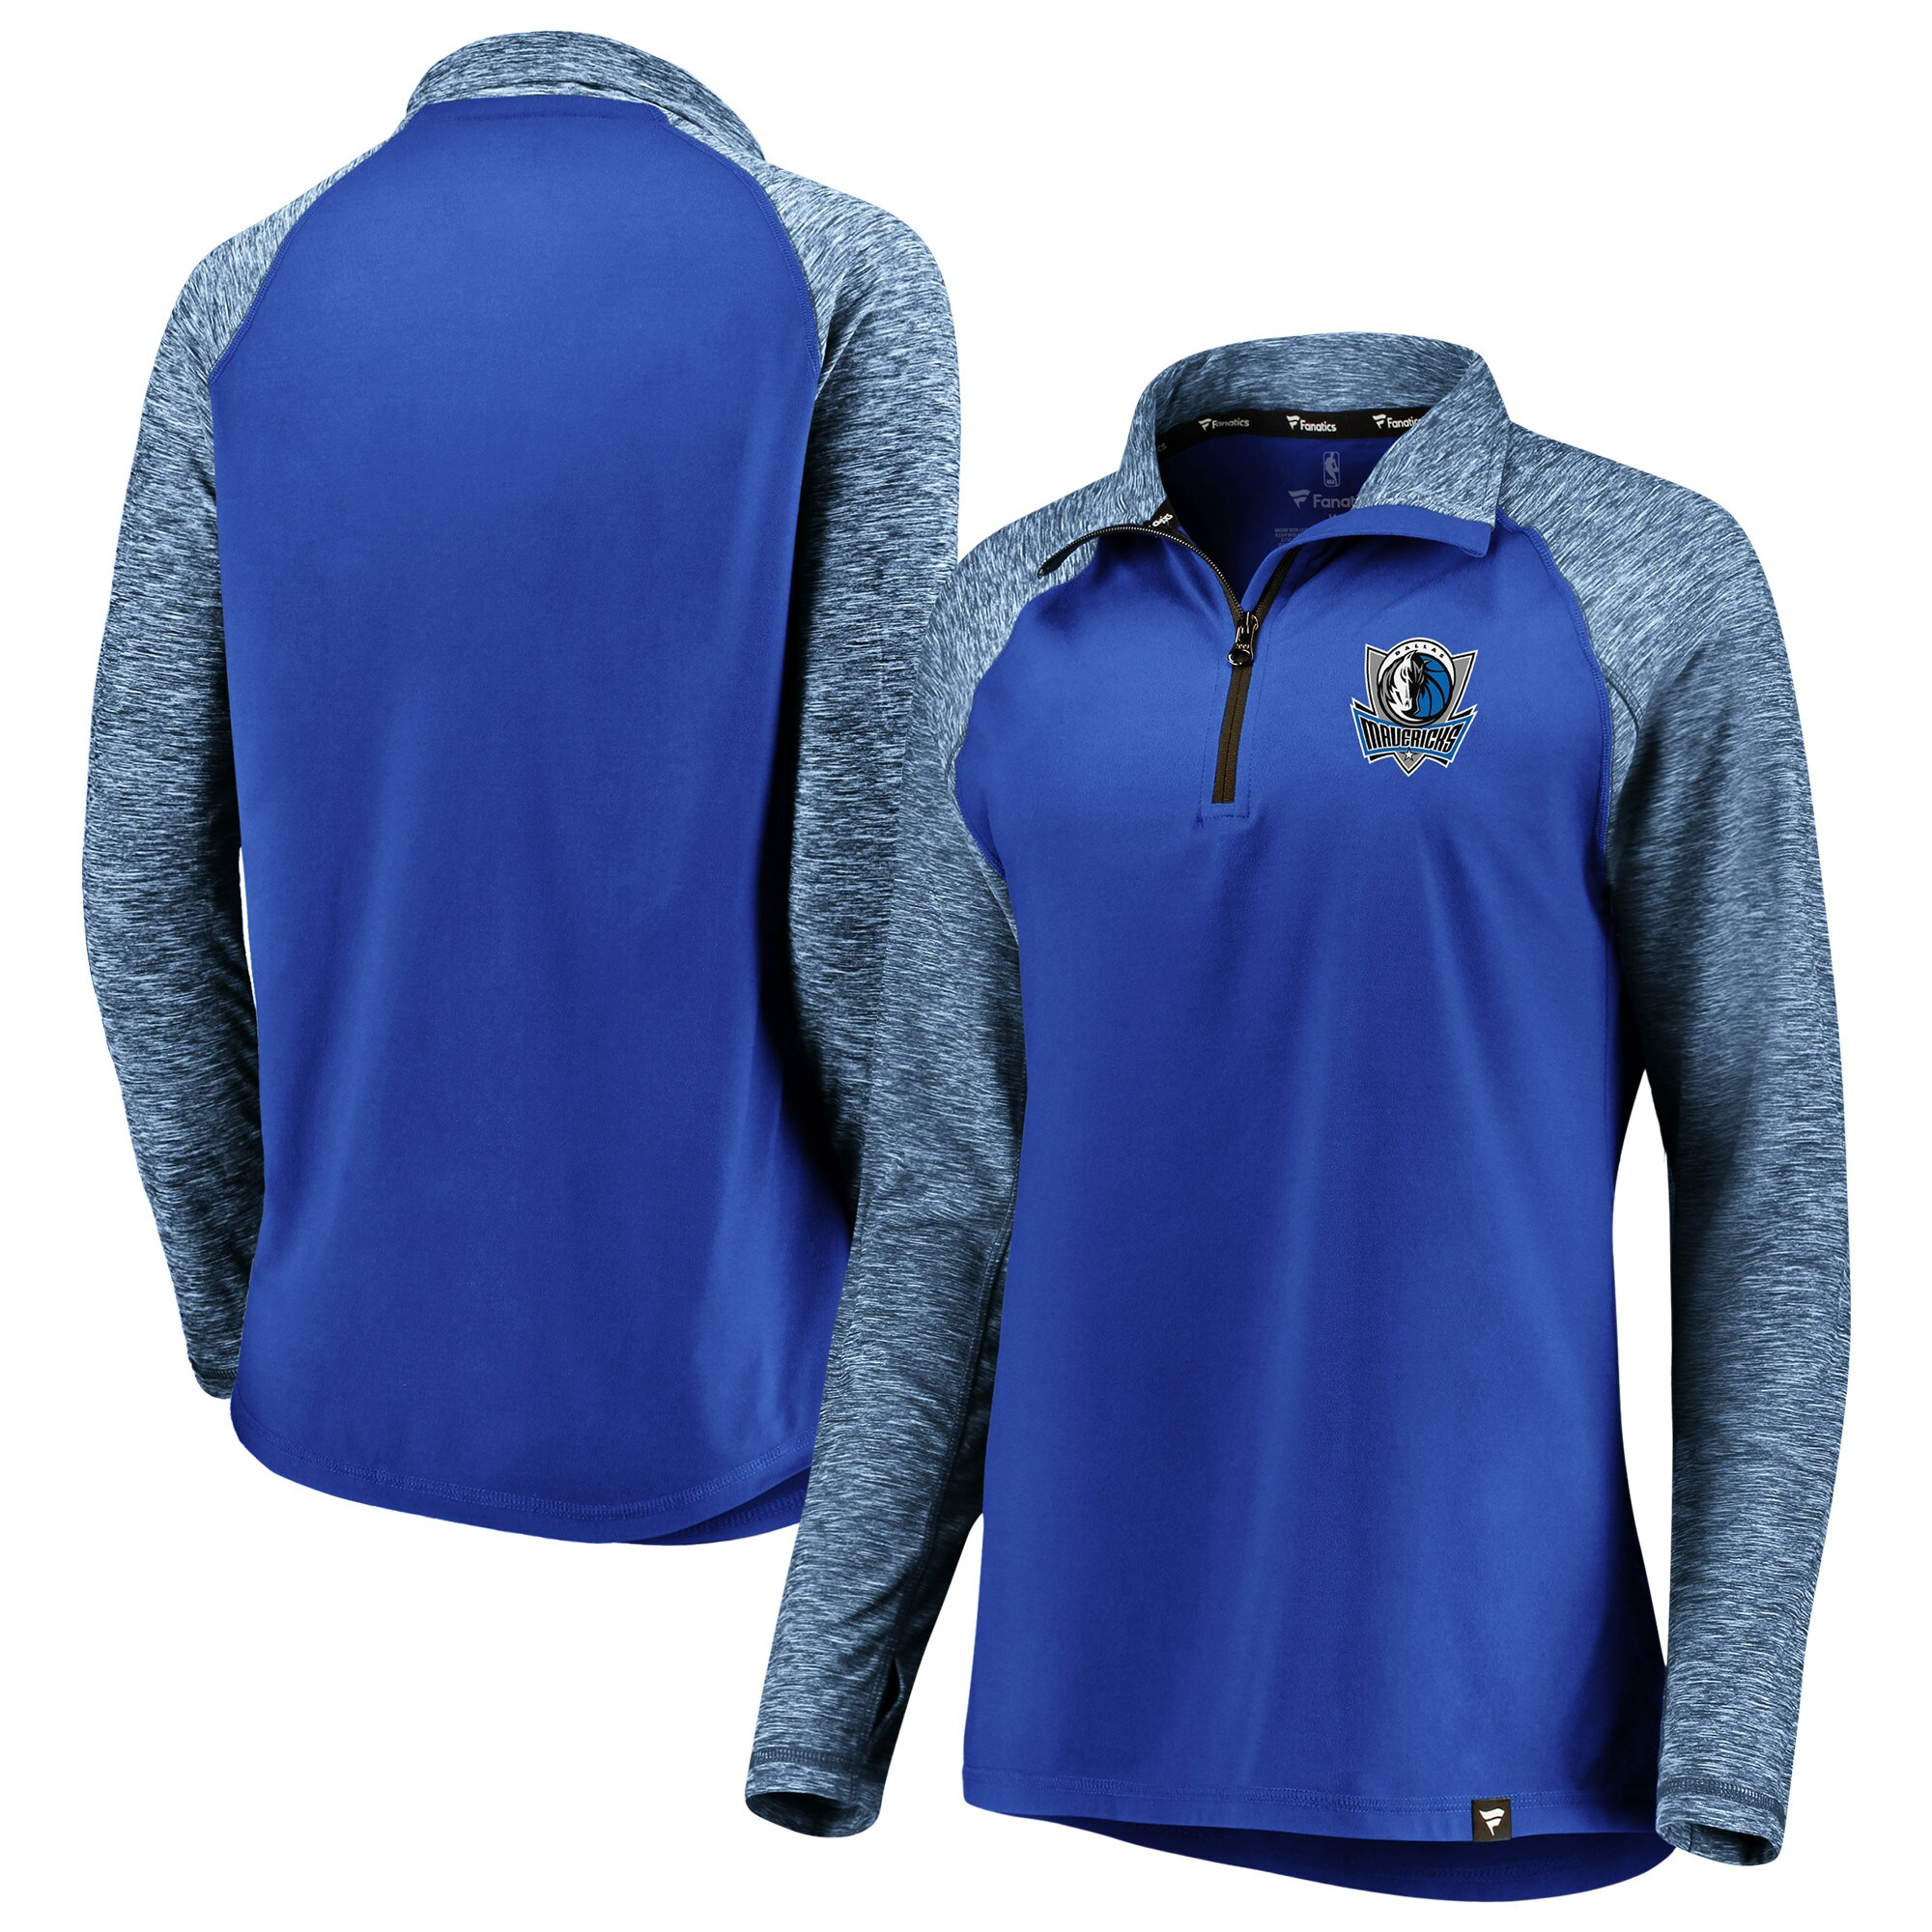 Dallas Mavericks Fanatics Branded Women's Made to Move Static Performance Raglan Sleeve Quarter-Zip Pullover Jacket - Blue/Heathered Blue